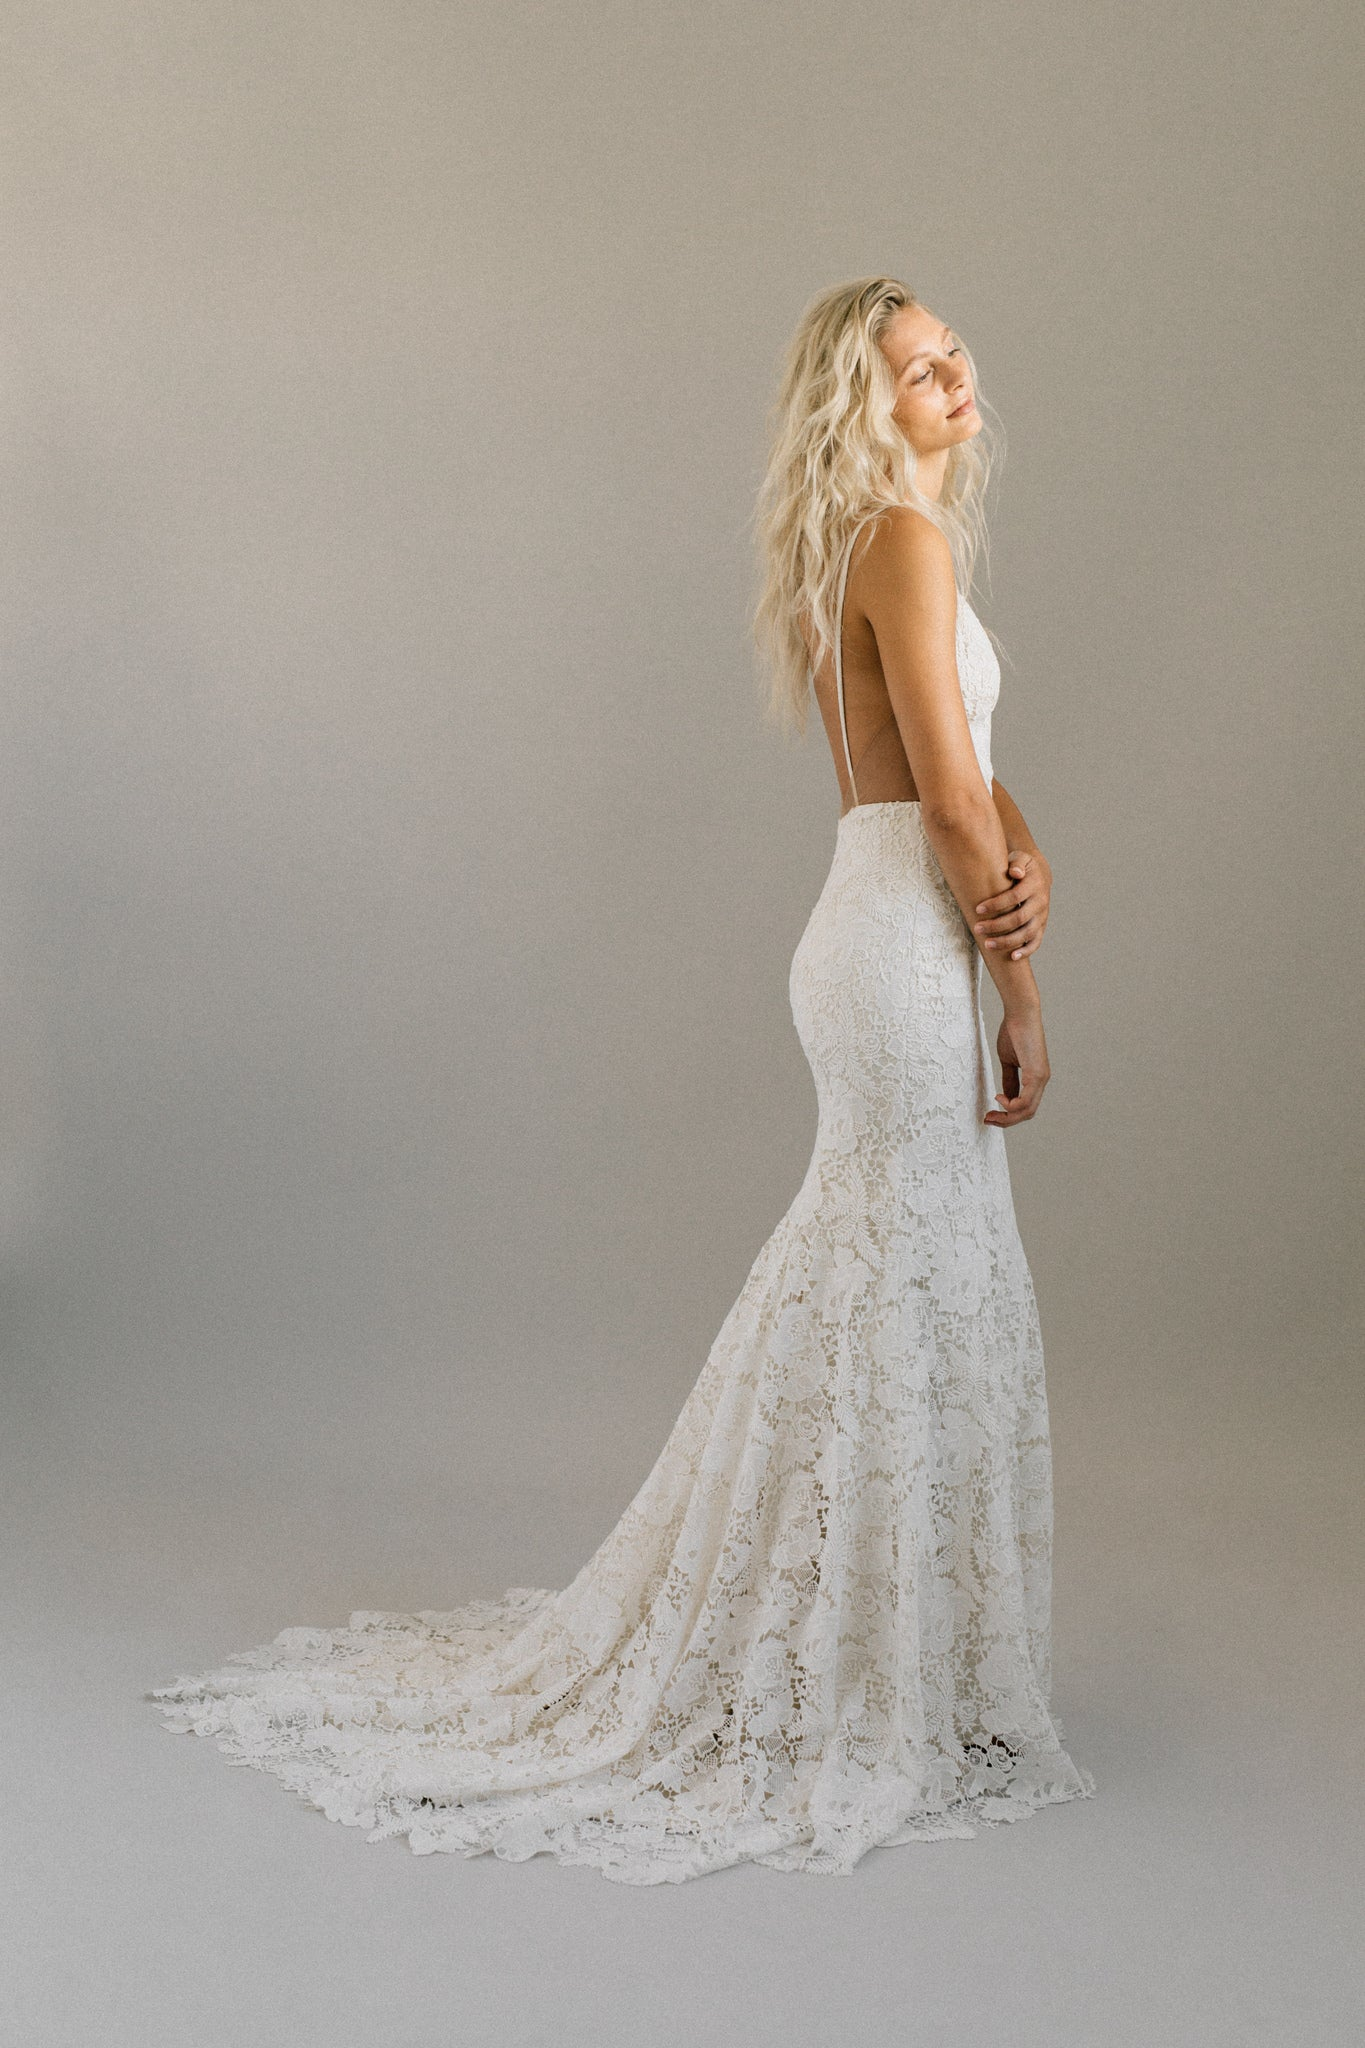 Boho backless wedding dress with bold floral lace, spaghetti straps, and a long train